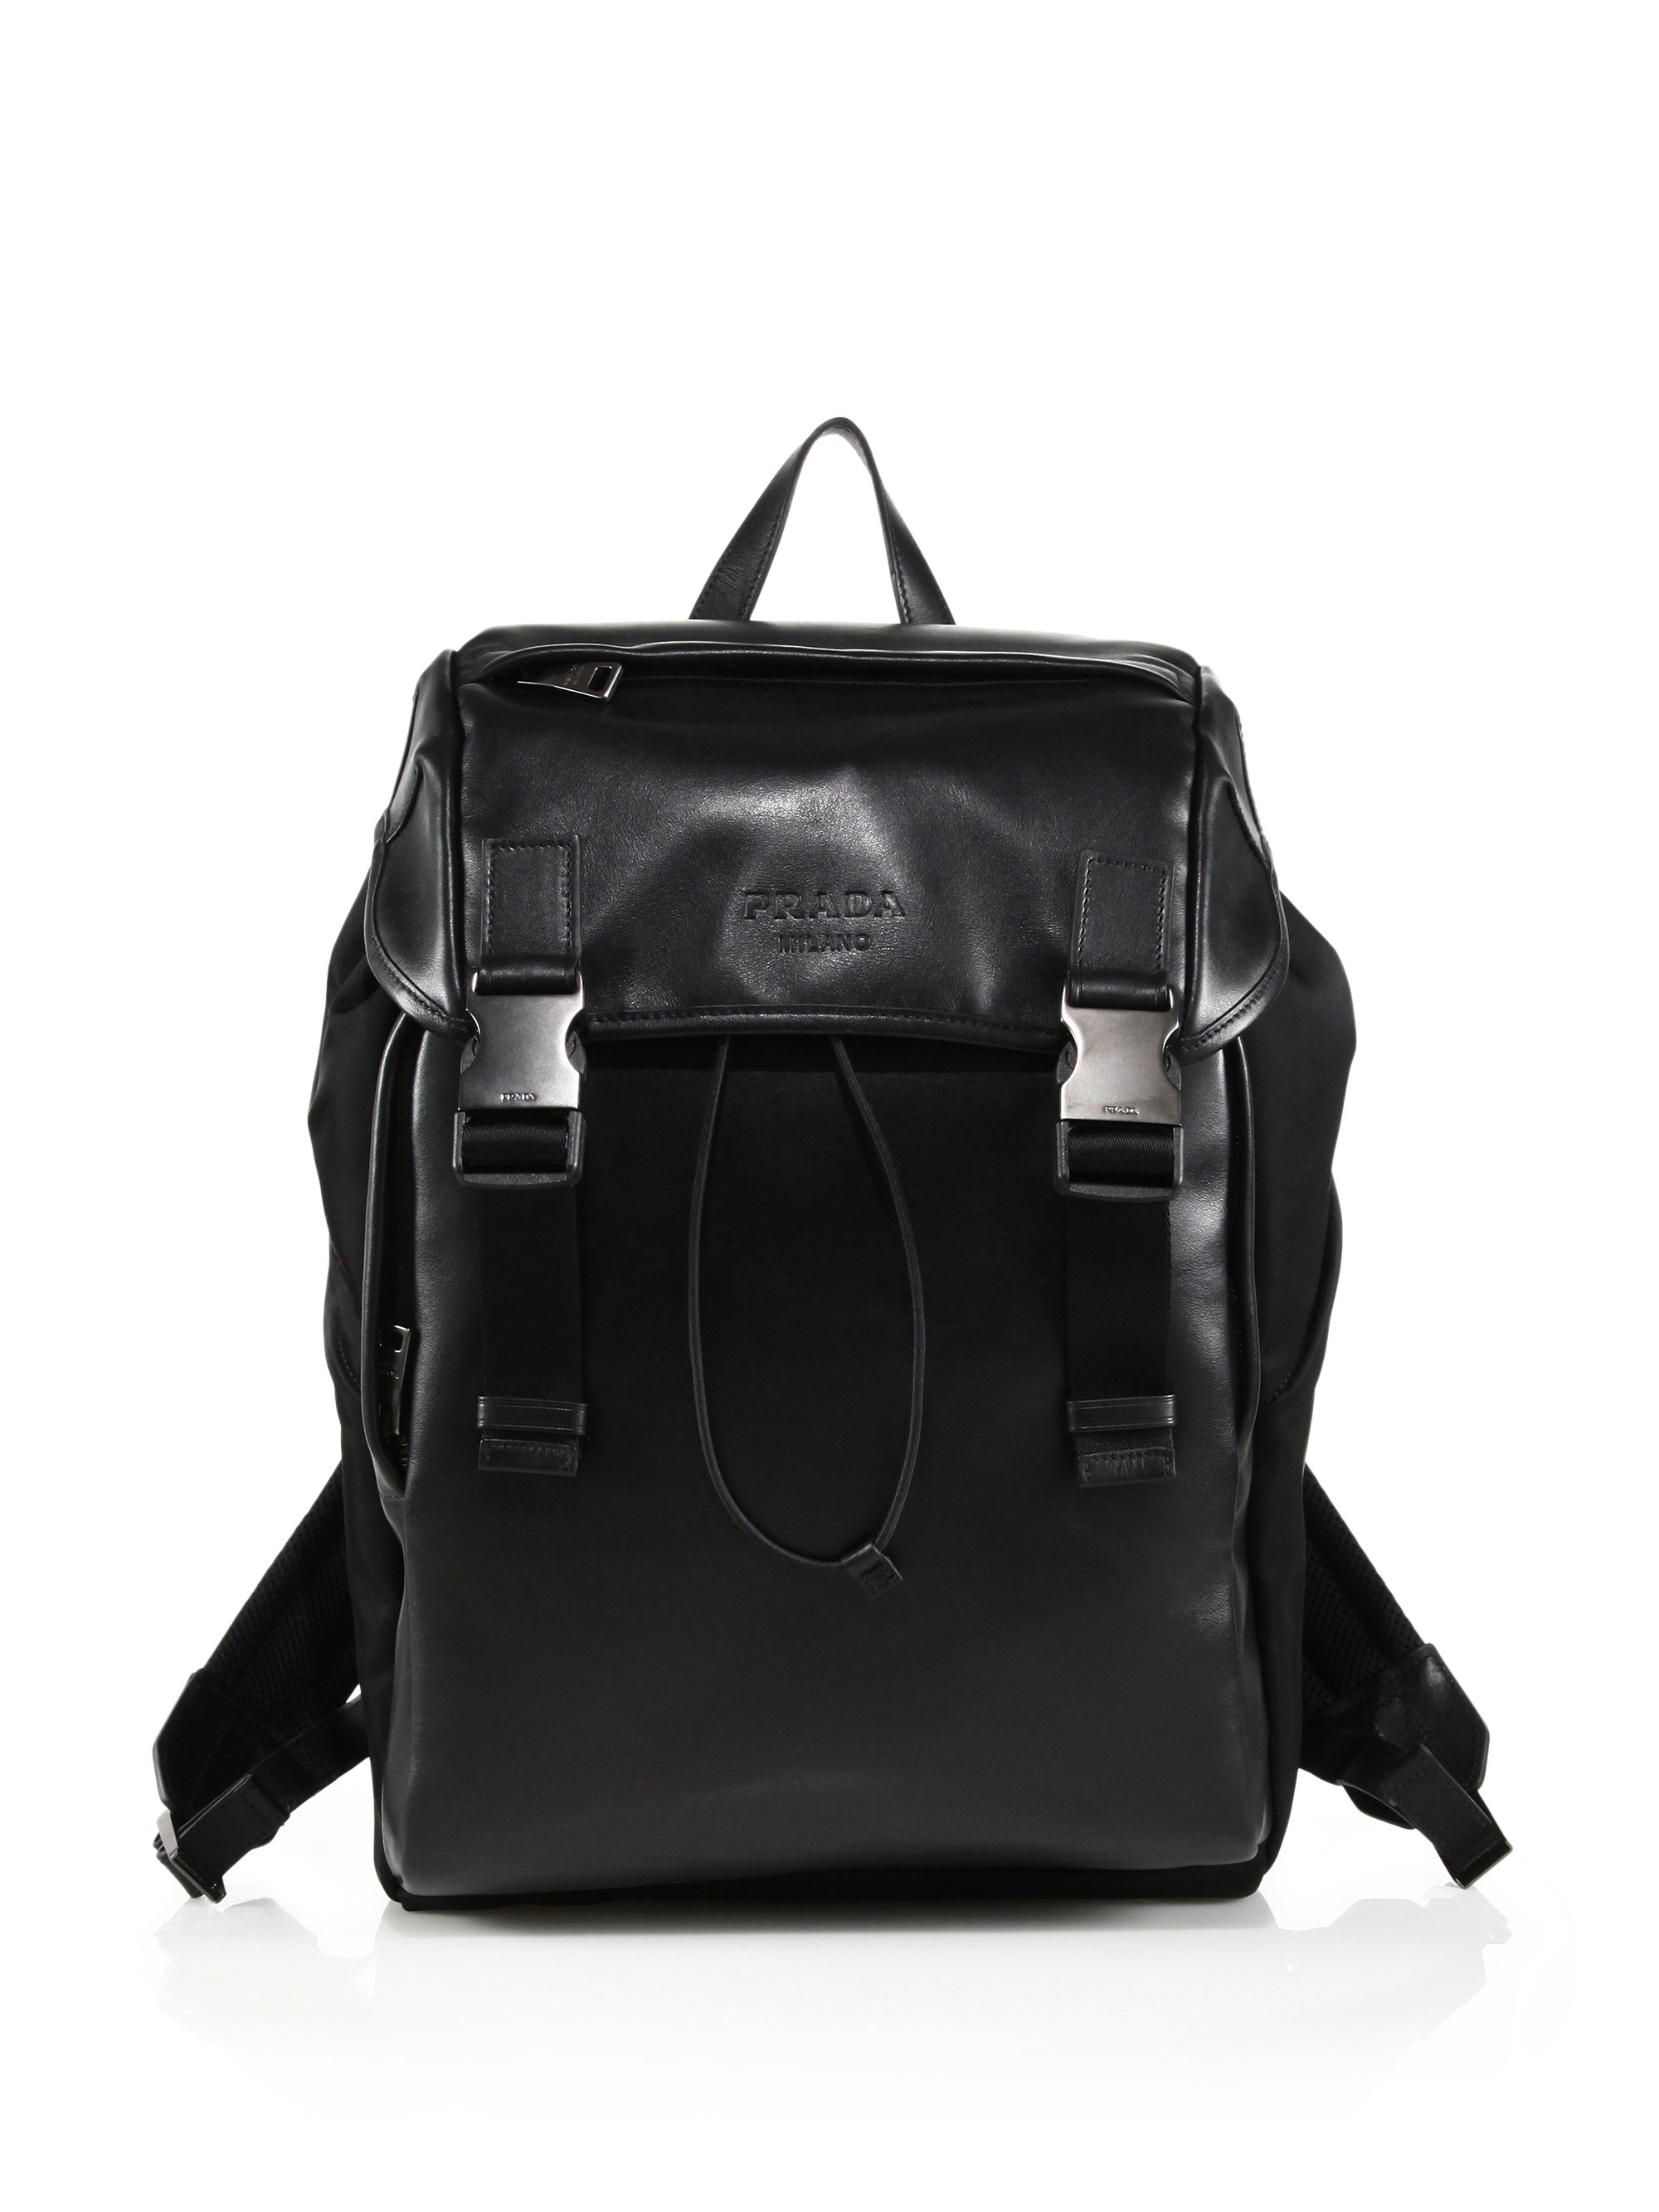 cheap prada bags for sale - 74+ Men's Prada Backpacks - Browse & Shop | Lyst